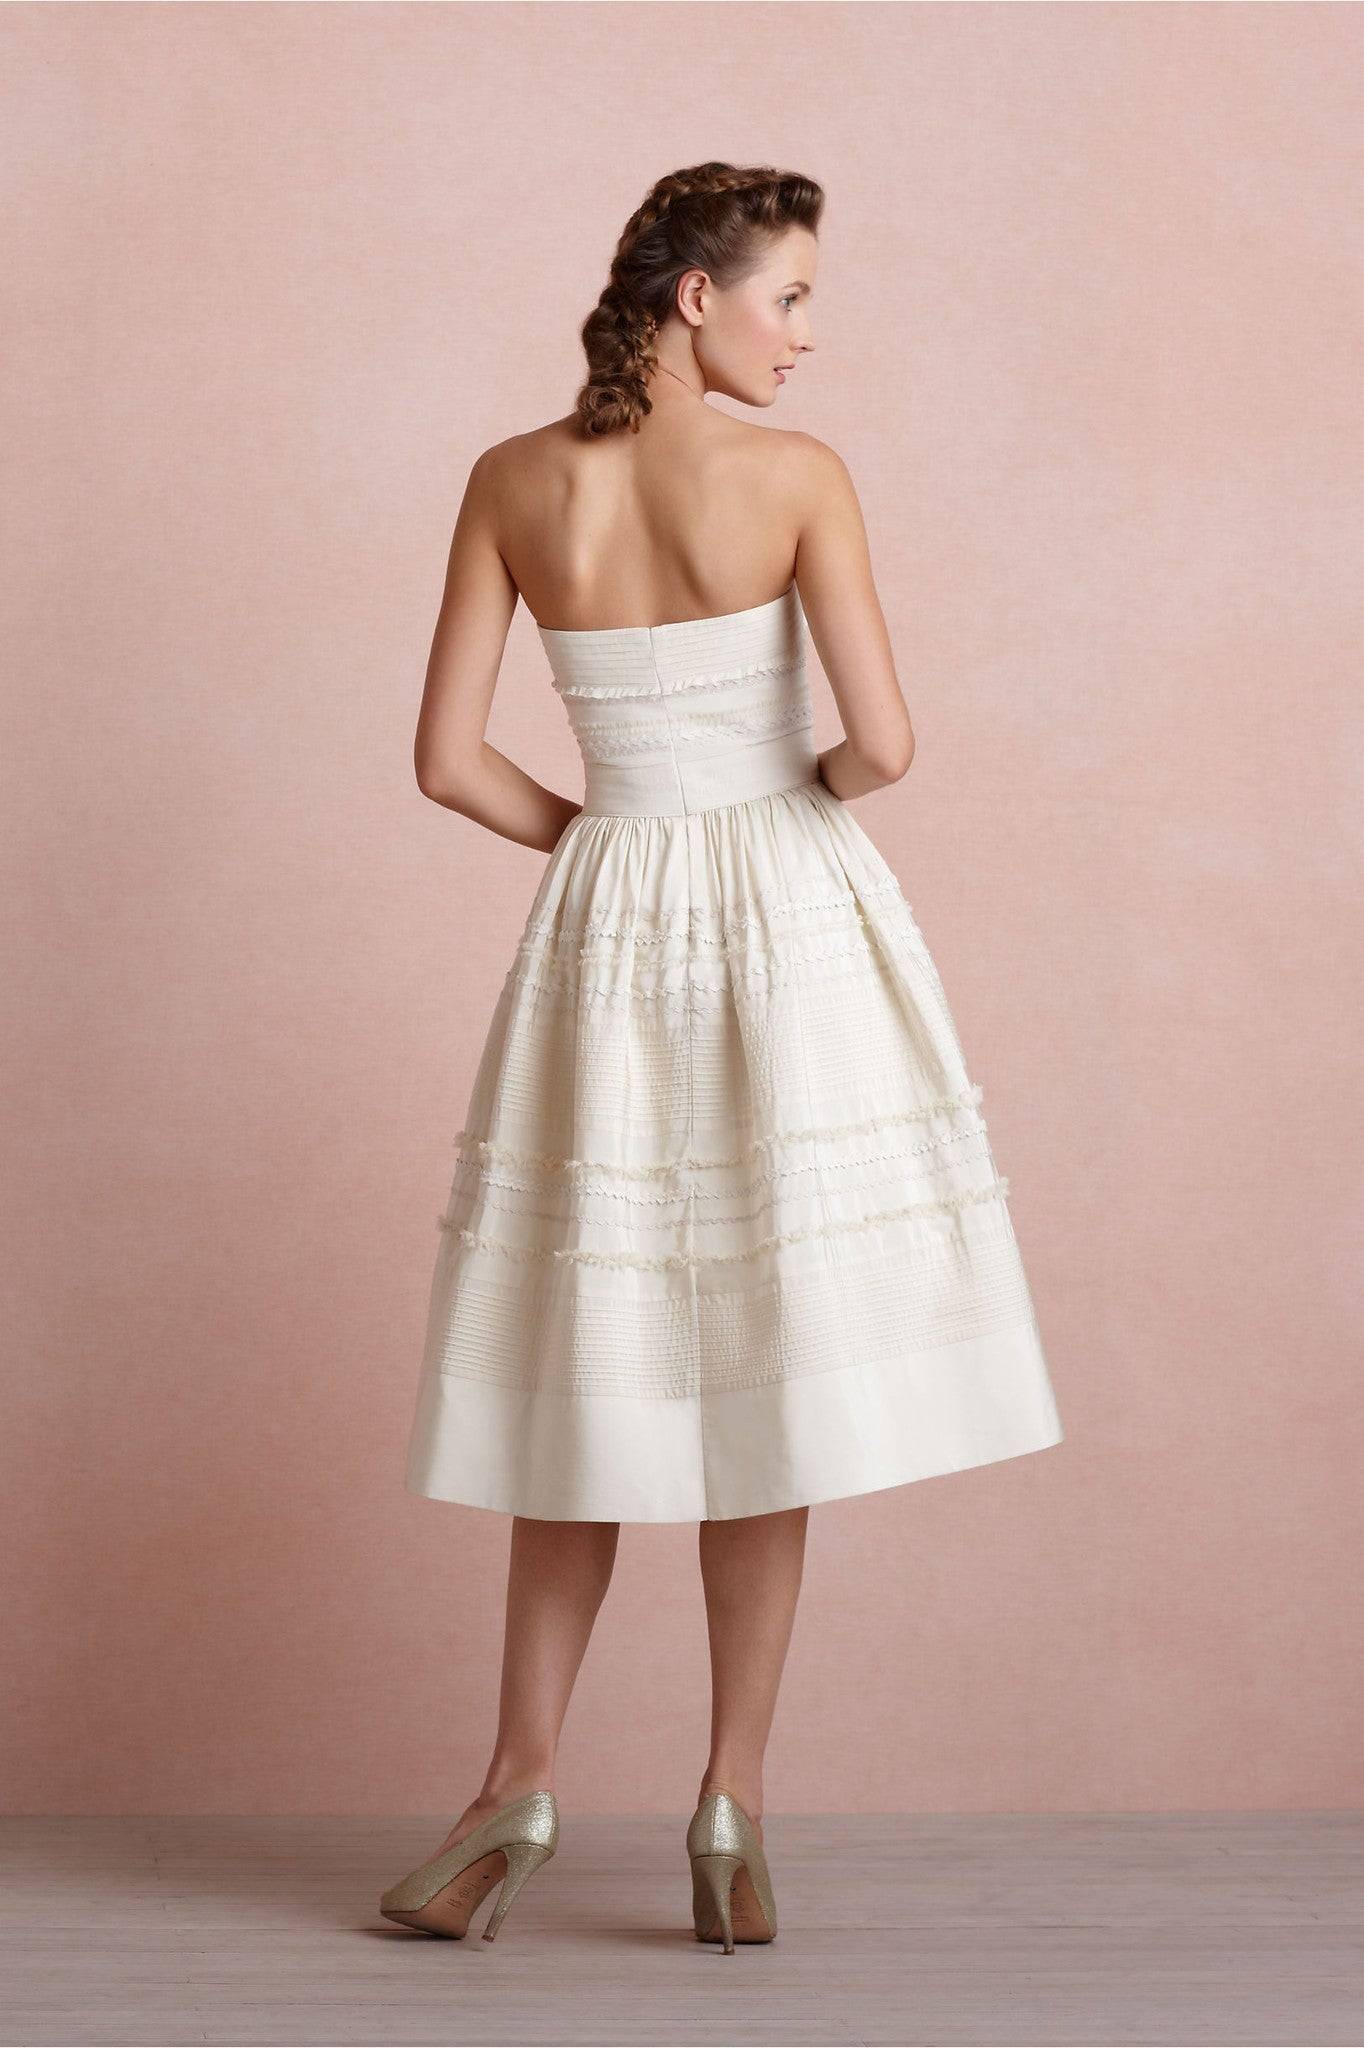 BHLDN Fondant Tea Dress - Adinas Bridal